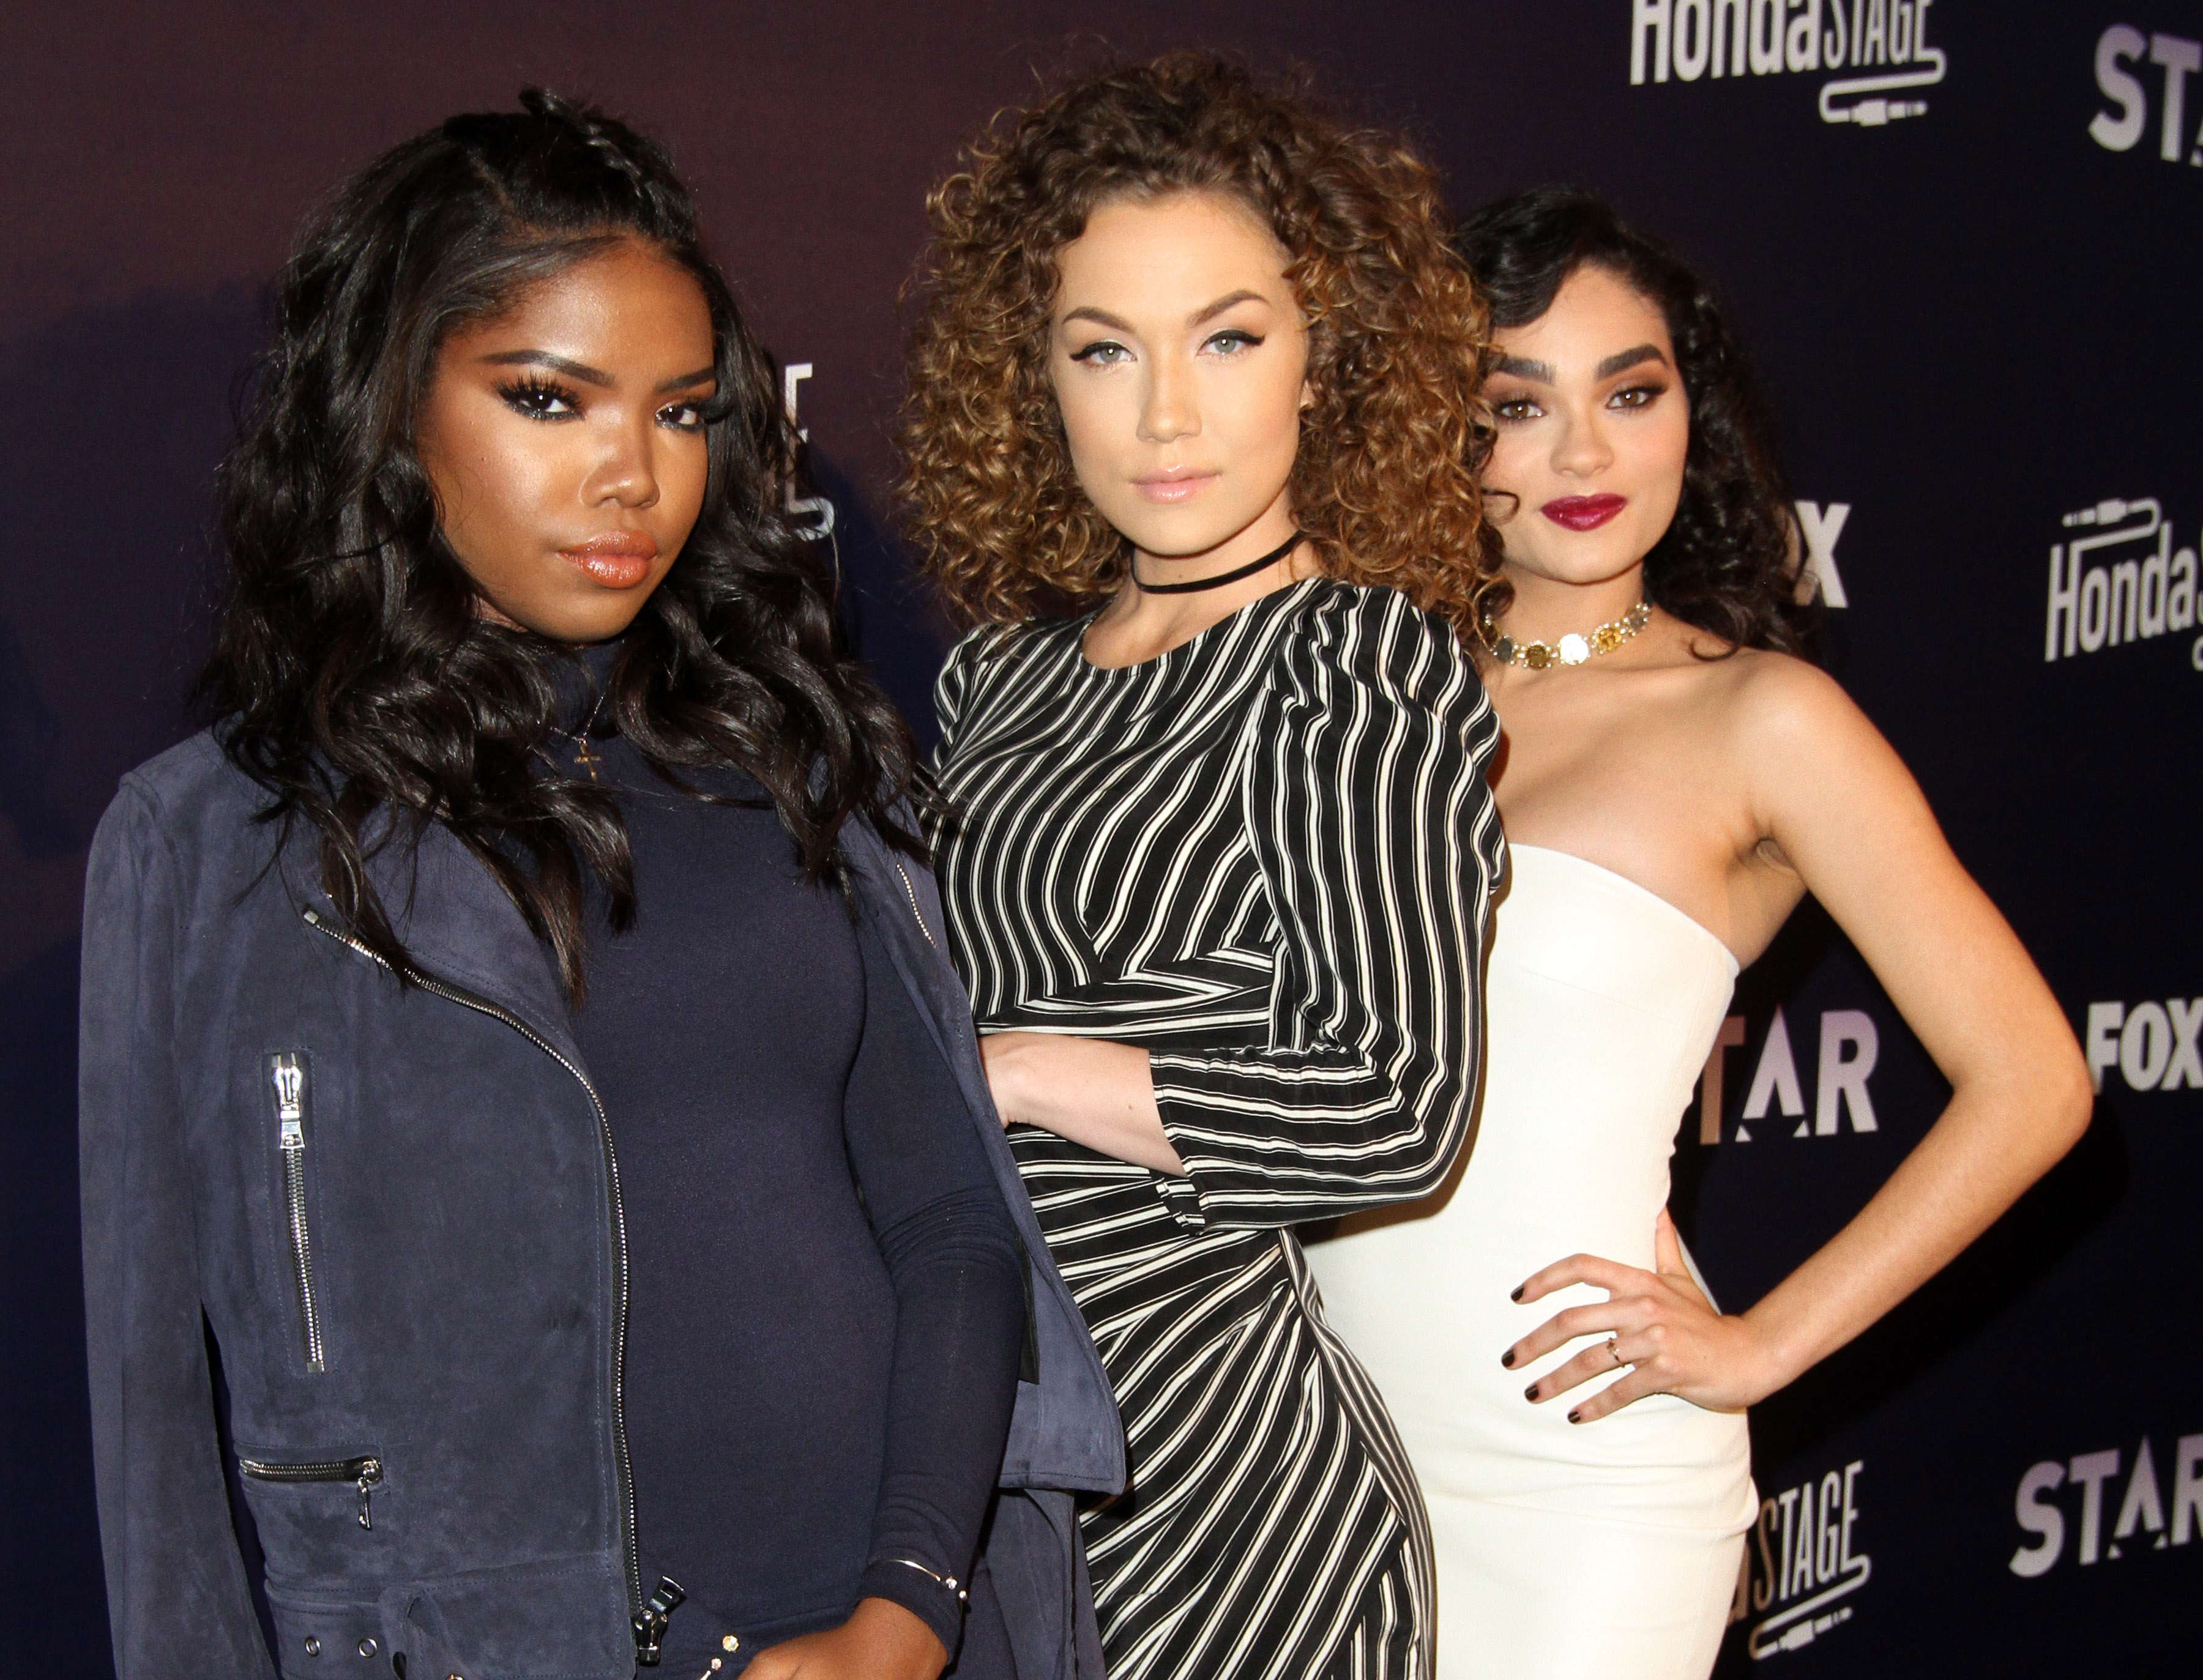 Honda Stage Celebrates The Music of FOX's 'Star' - Arrivals